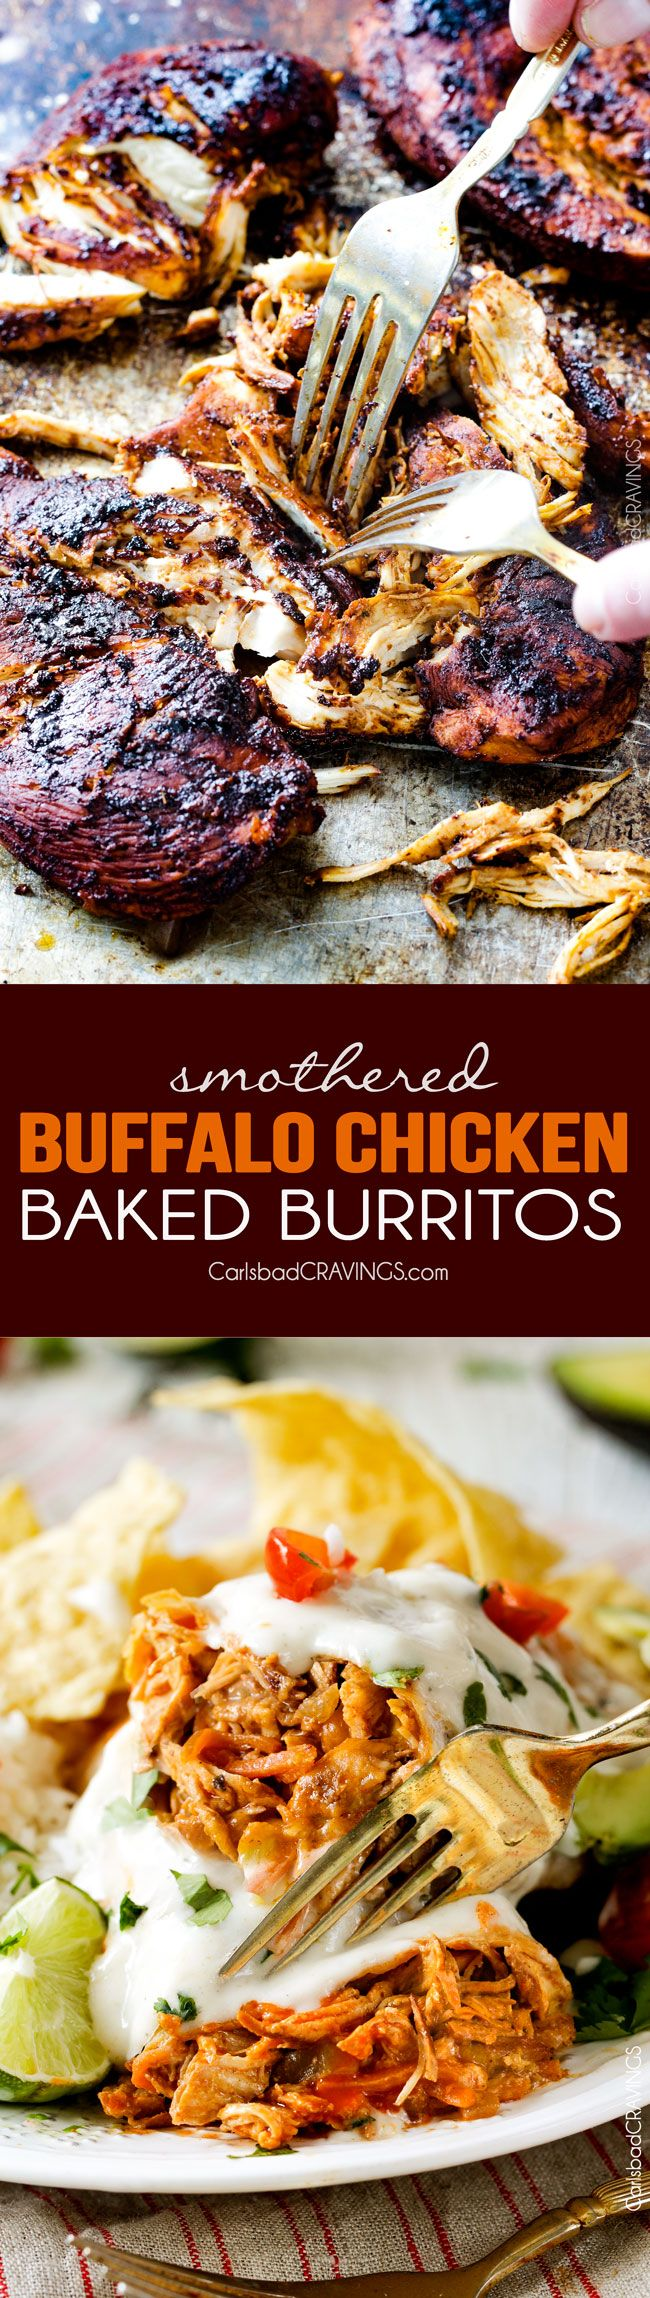 "Smothered Baked BUFFALO Chicken Burritos AKA ""skinny chimichangas"" are restaurant delicious without all the calories! stuffed with the BEST buffalo chicken and then baked to golden perfection and smothered in most incredible Creamy Lime Ranch Sauce! my family goes crazy over these!!"